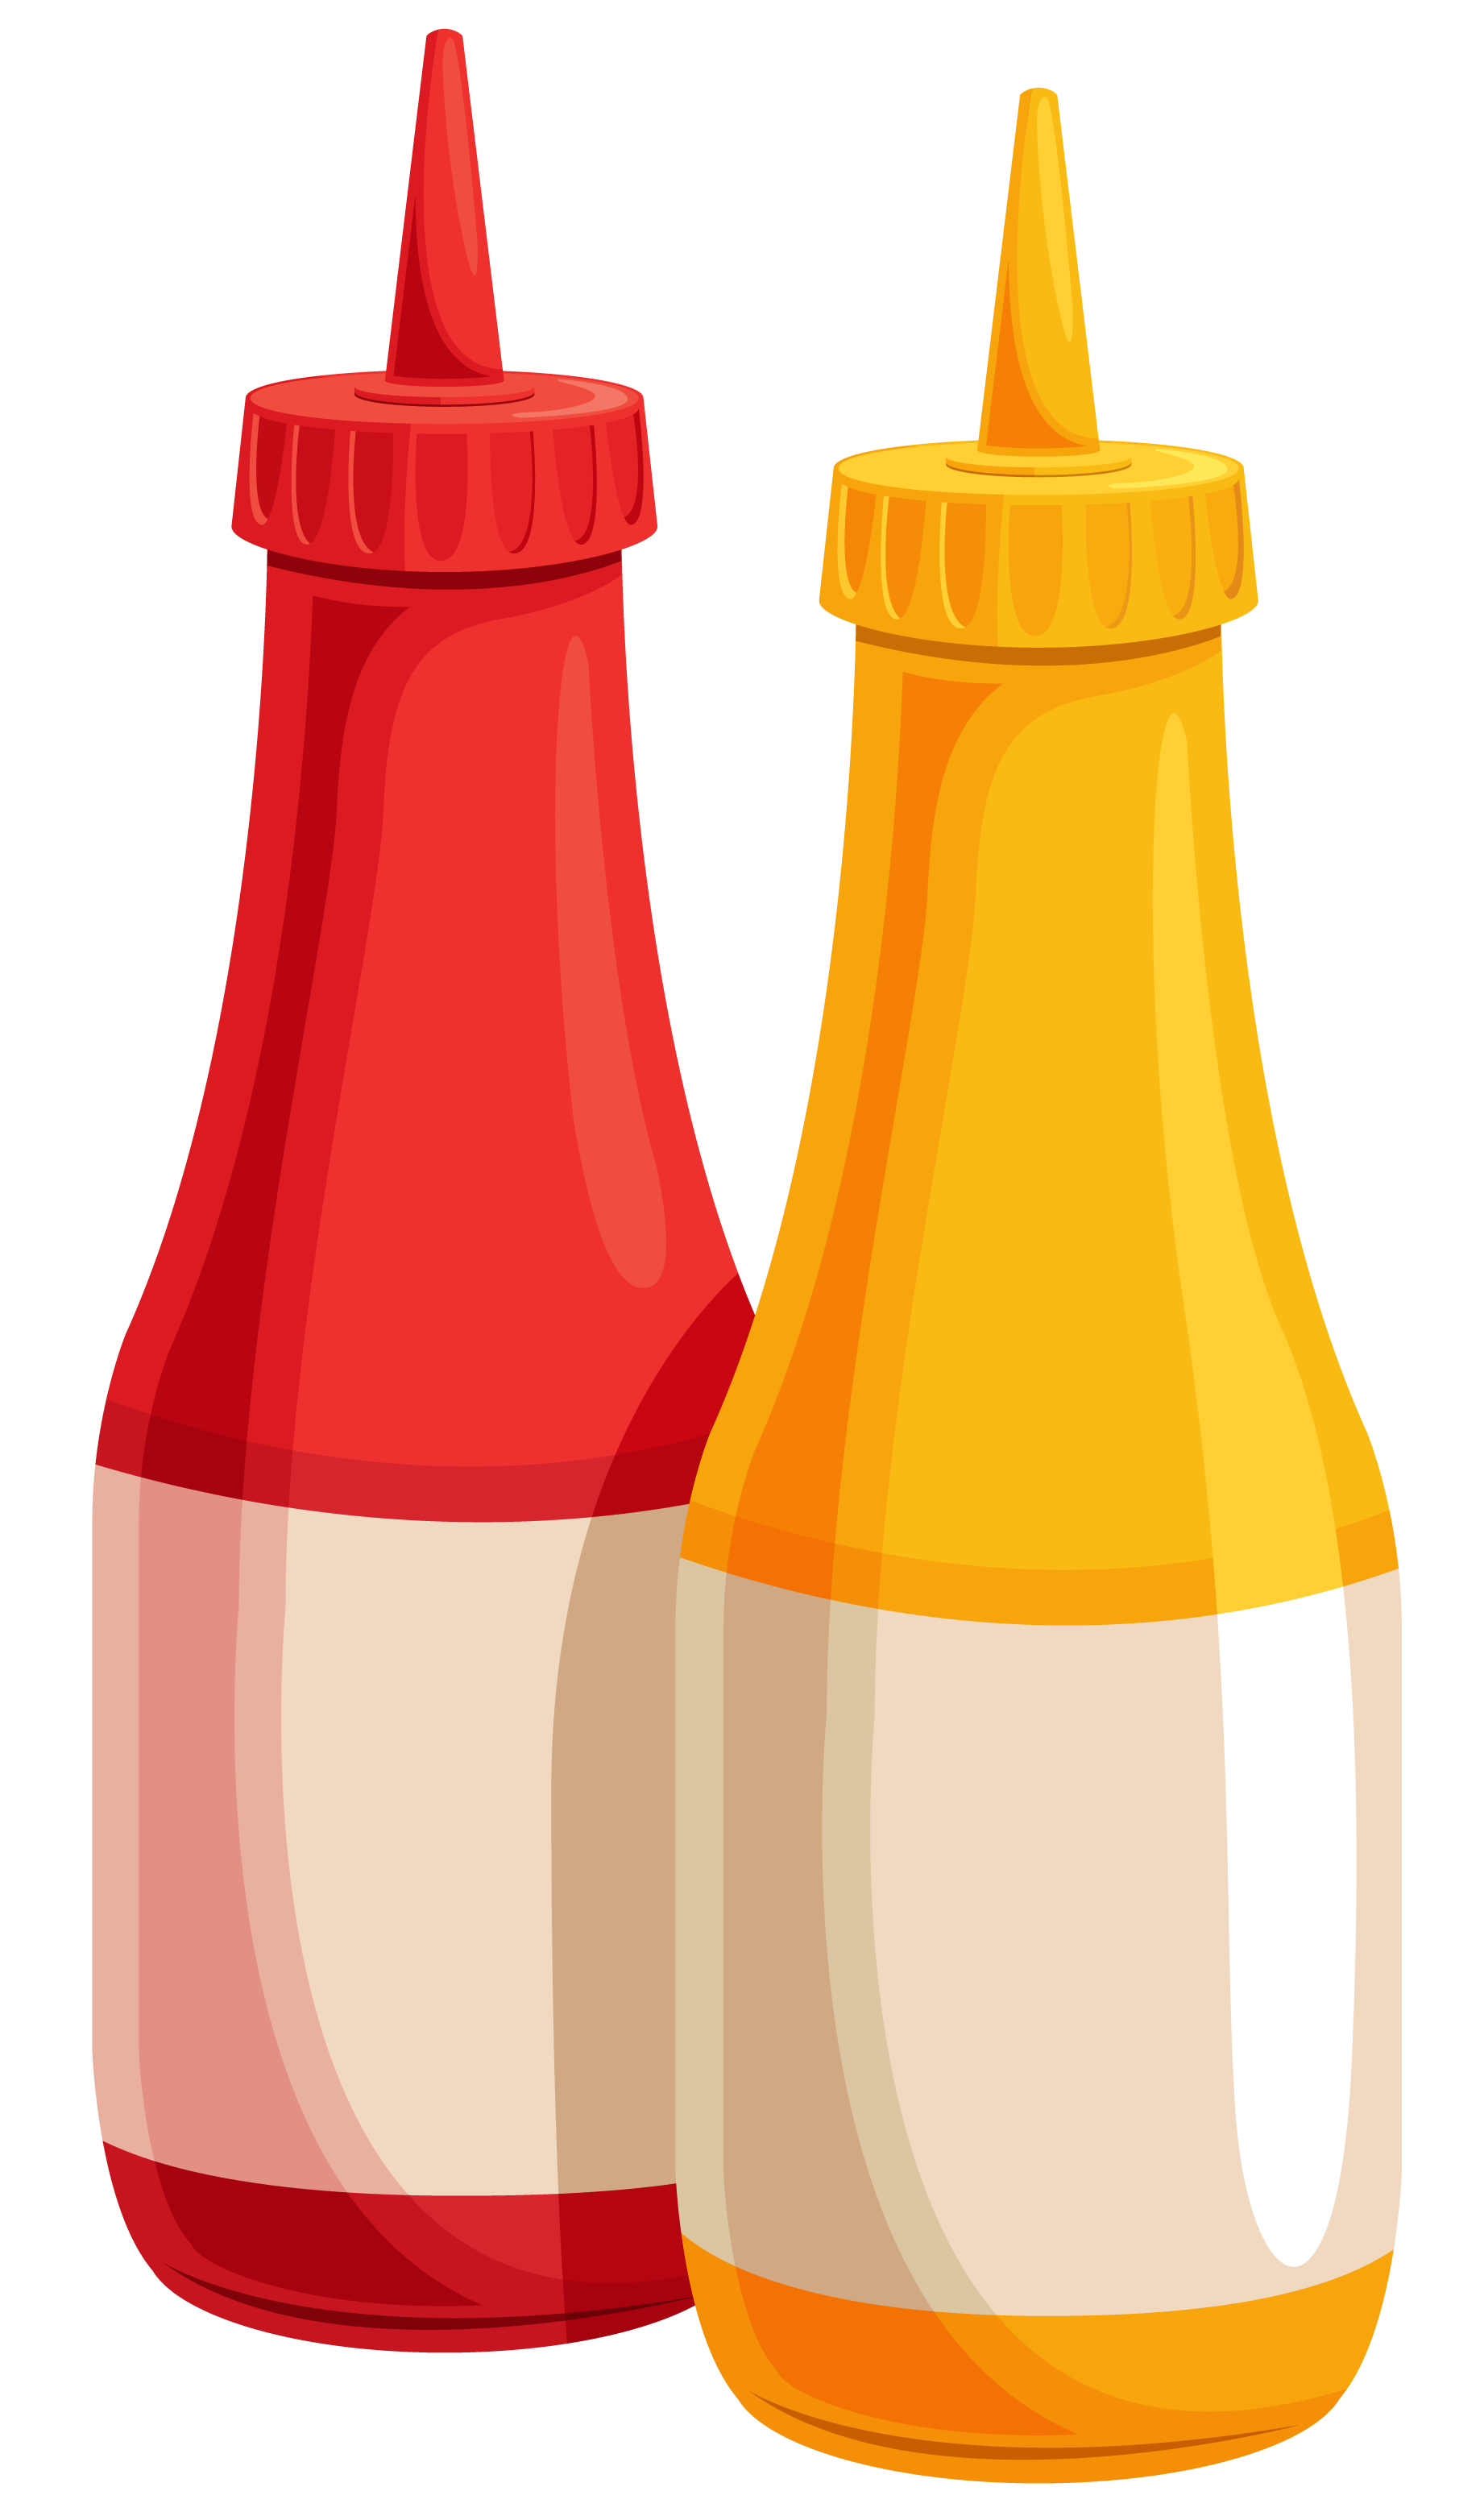 Ketchup And Mustard PNG - 48779